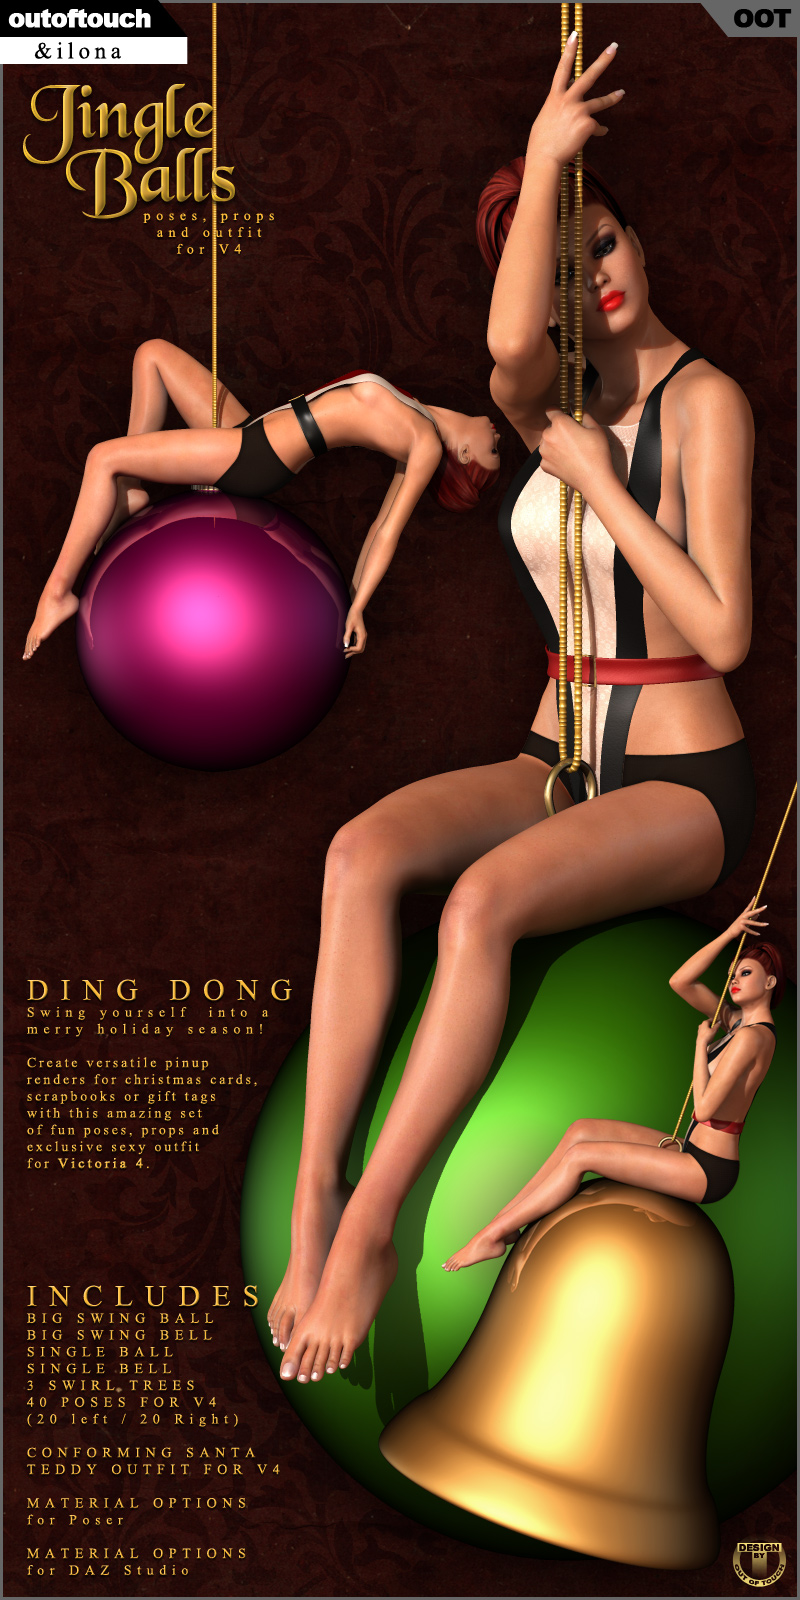 Jingle Balls: Poses, Props & Outfit for V4 by outoftouch